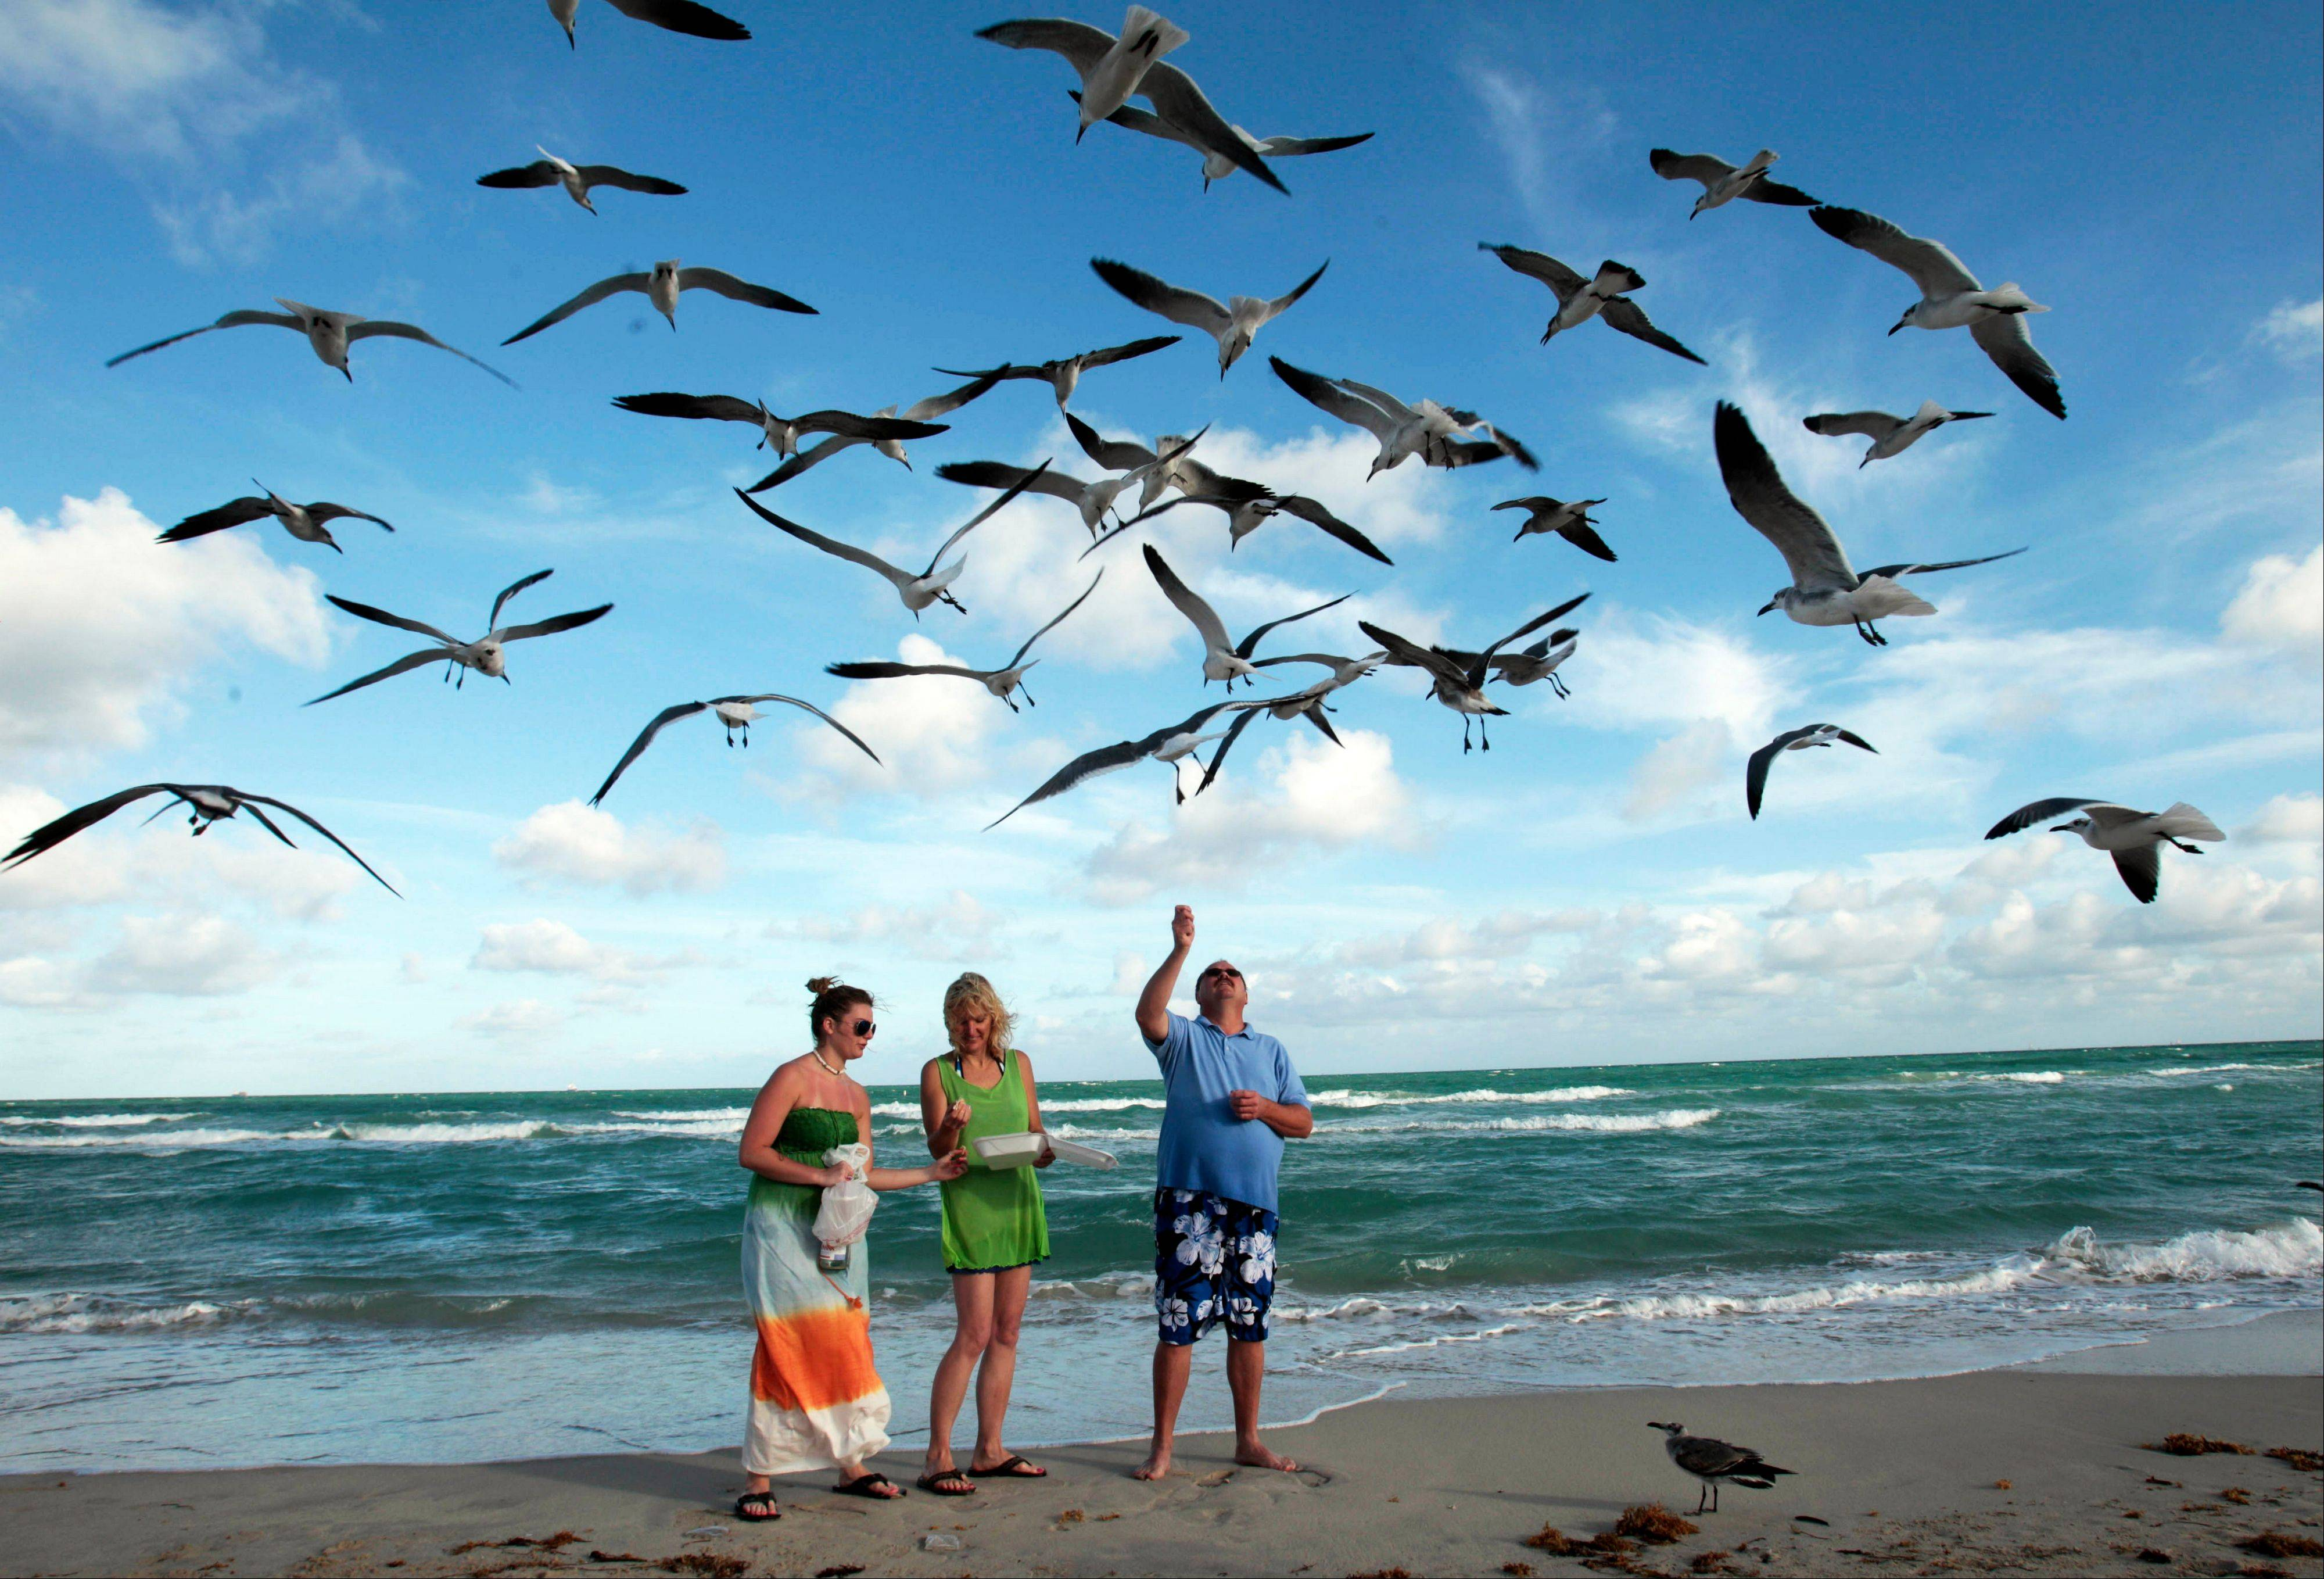 Preslee Rakes, left, her mother Tina Rakes, center, and Brad Cunningham, right, all from Kansas, feed seagulls during a visit to the South Beach area of Miami Beach, Fla.